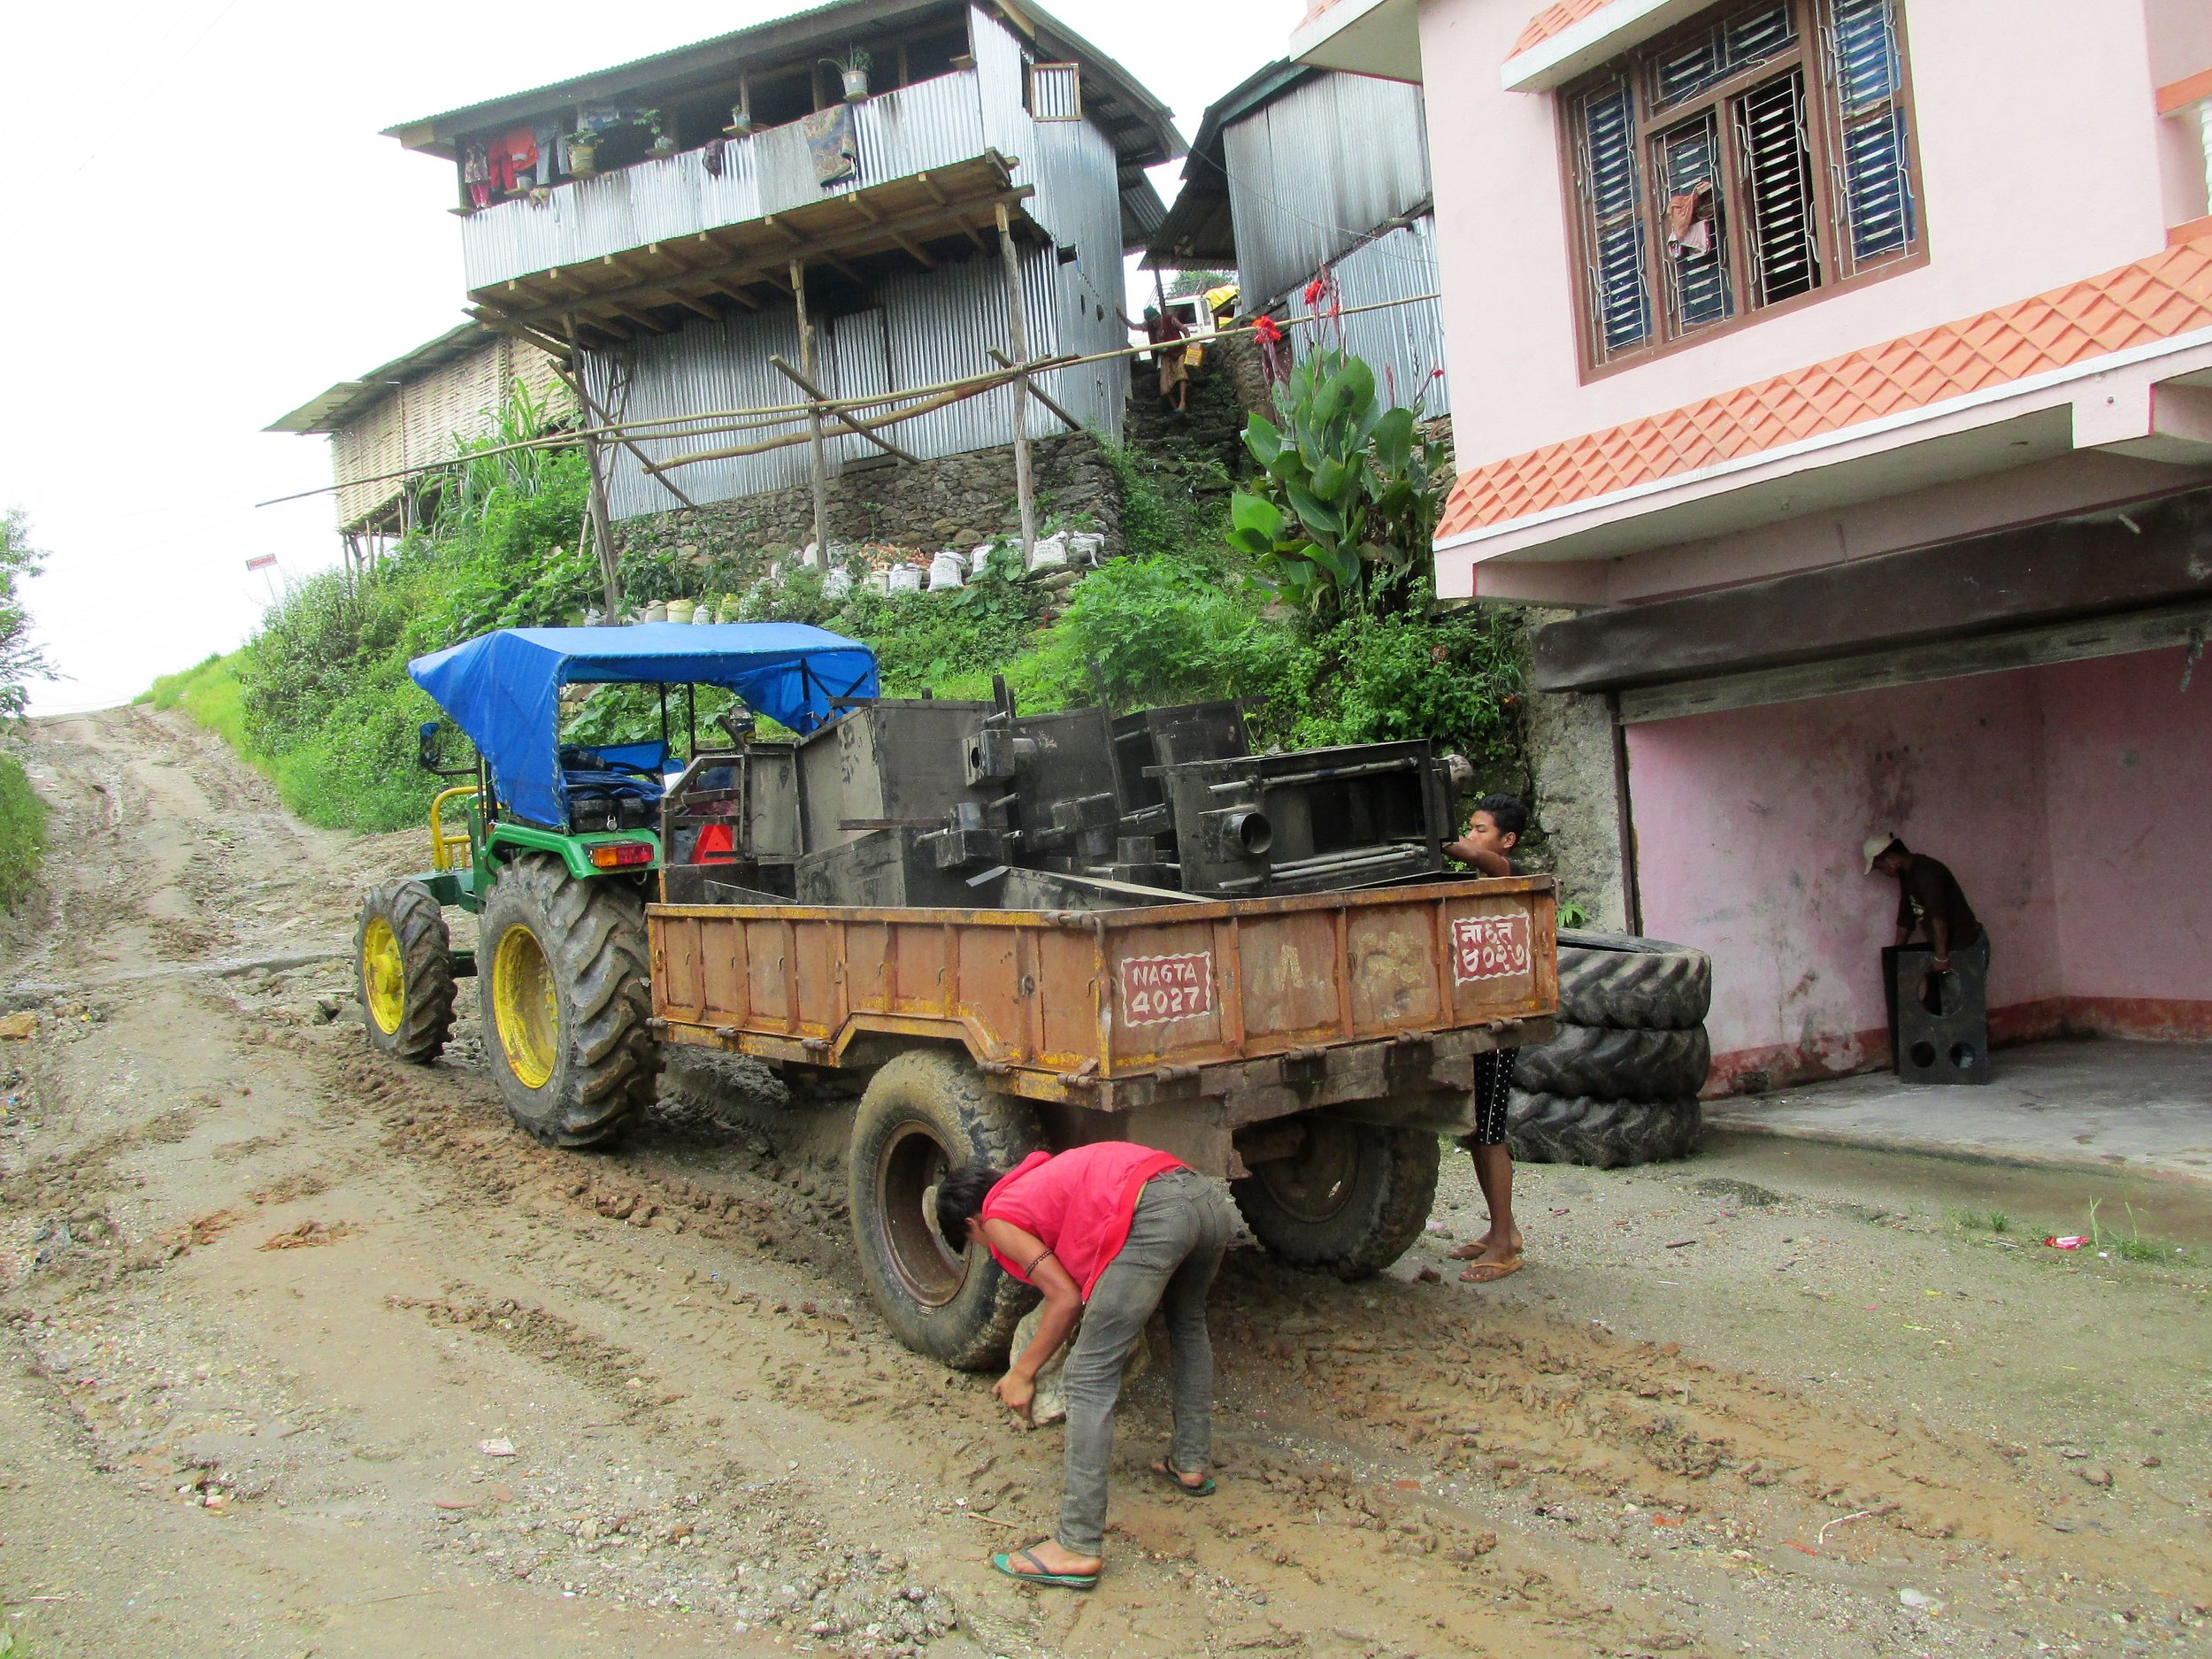 After Khandbari, the road becomes a dirt track, so the stoves were transferred to a tractor and trailer for the next leg of the journey.